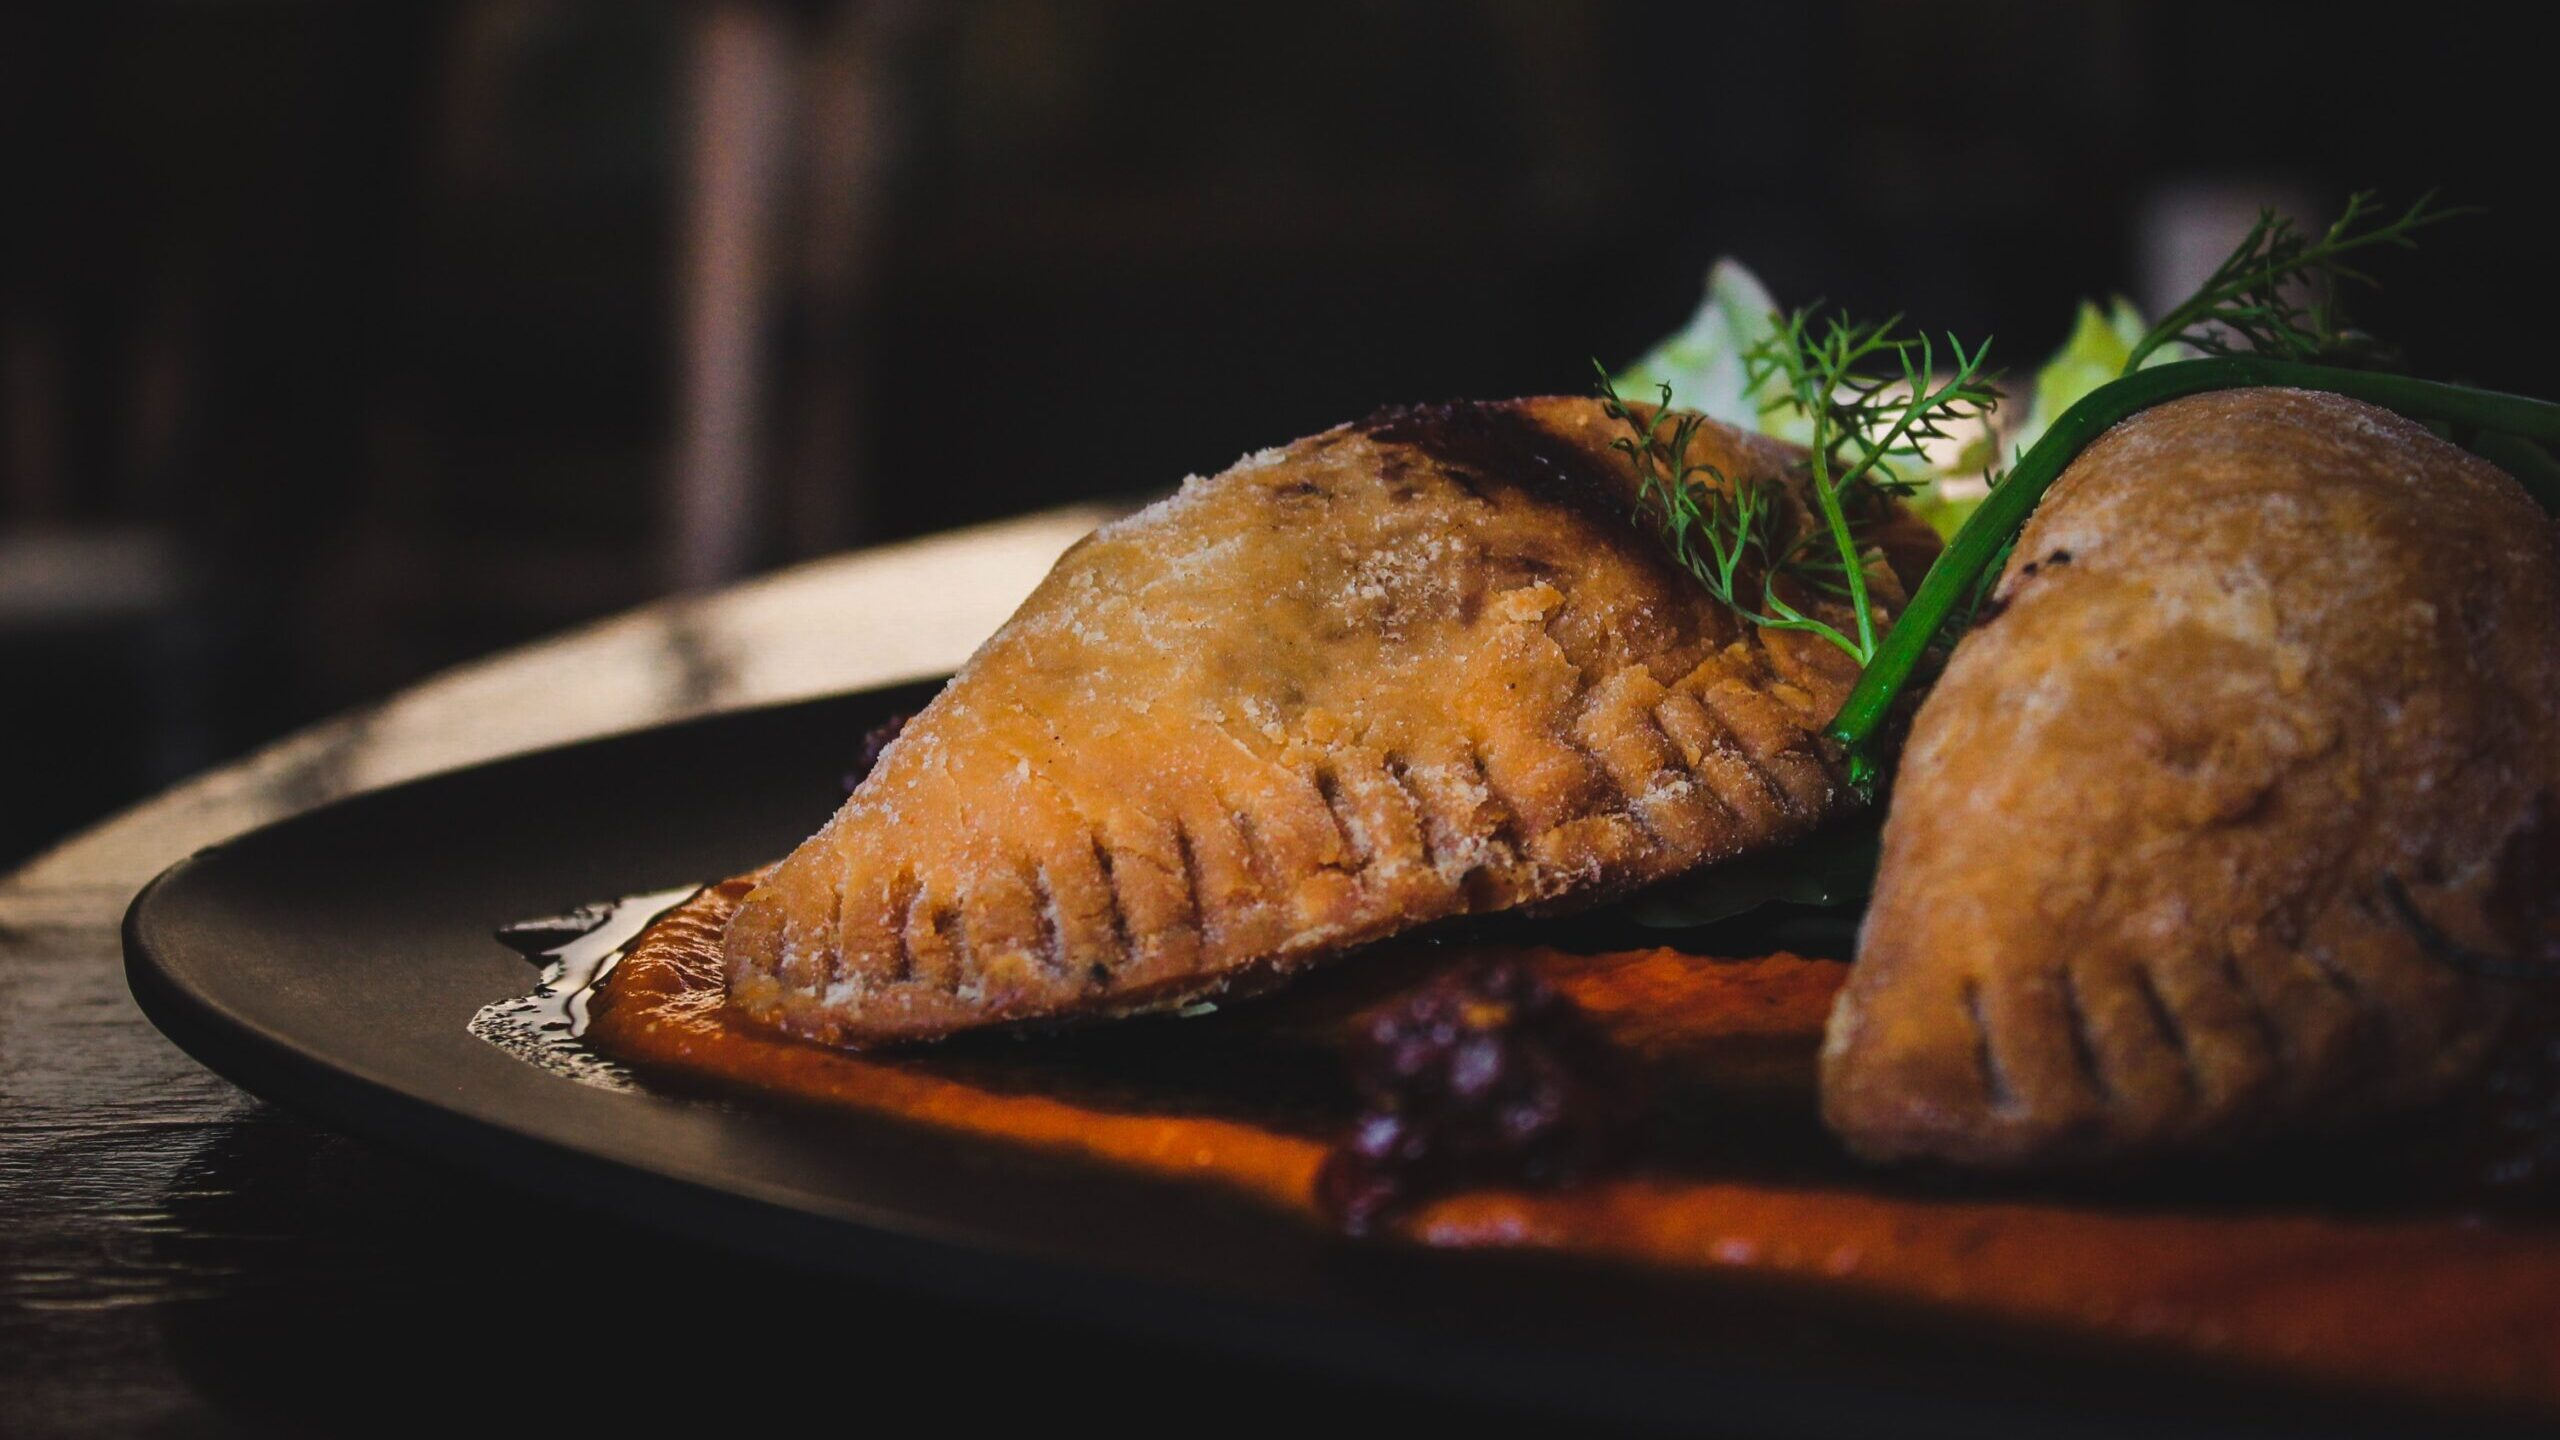 Snacks From The Southern Cone: Argentinian Empanadas Are Conquering The World